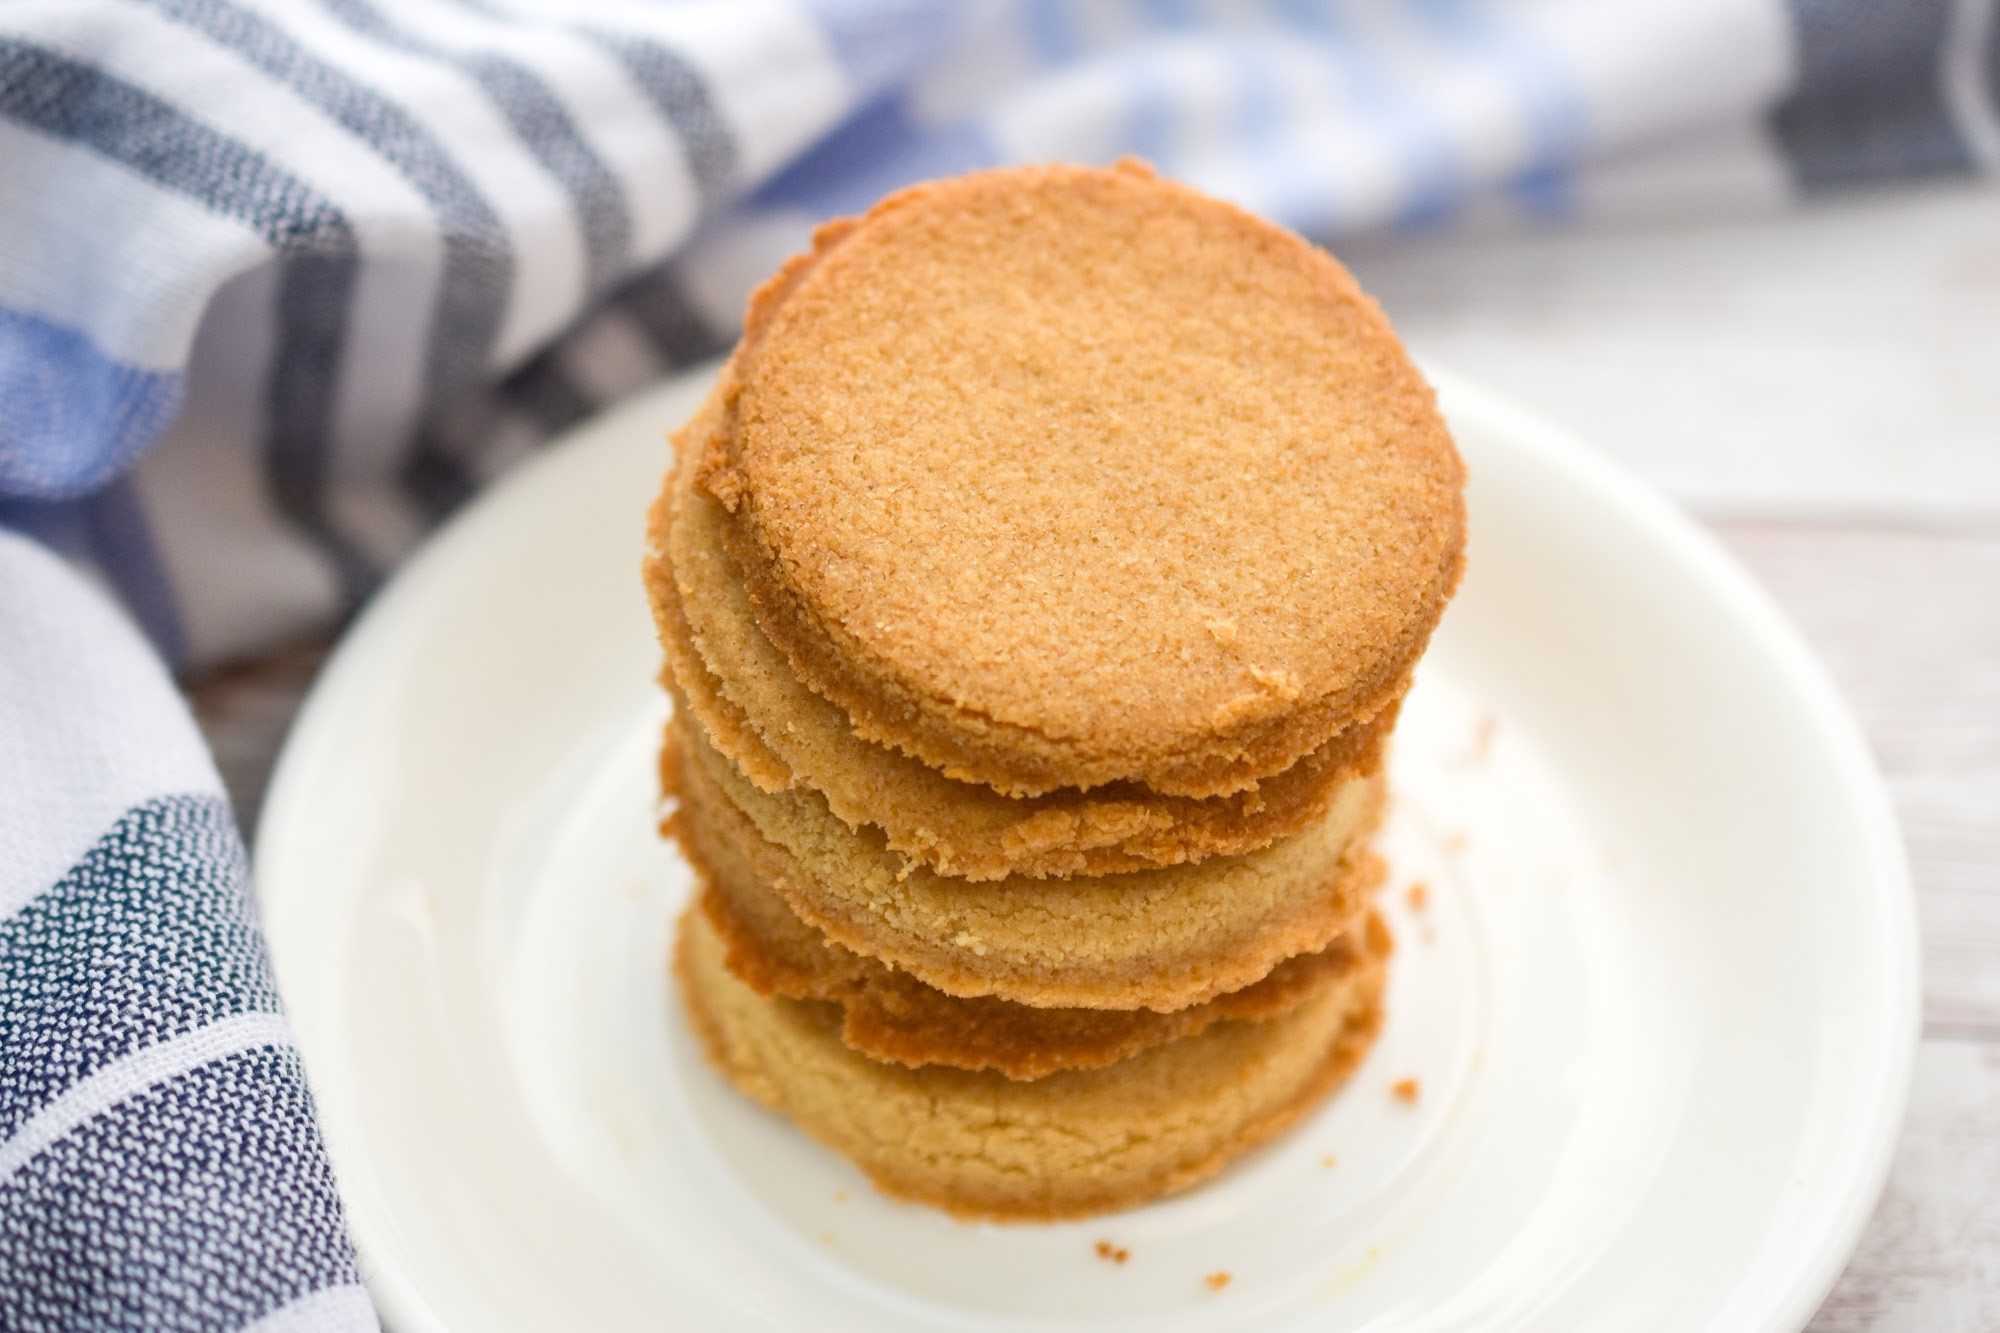 Keto coconut flour shortbread cookies stacked on a white plate